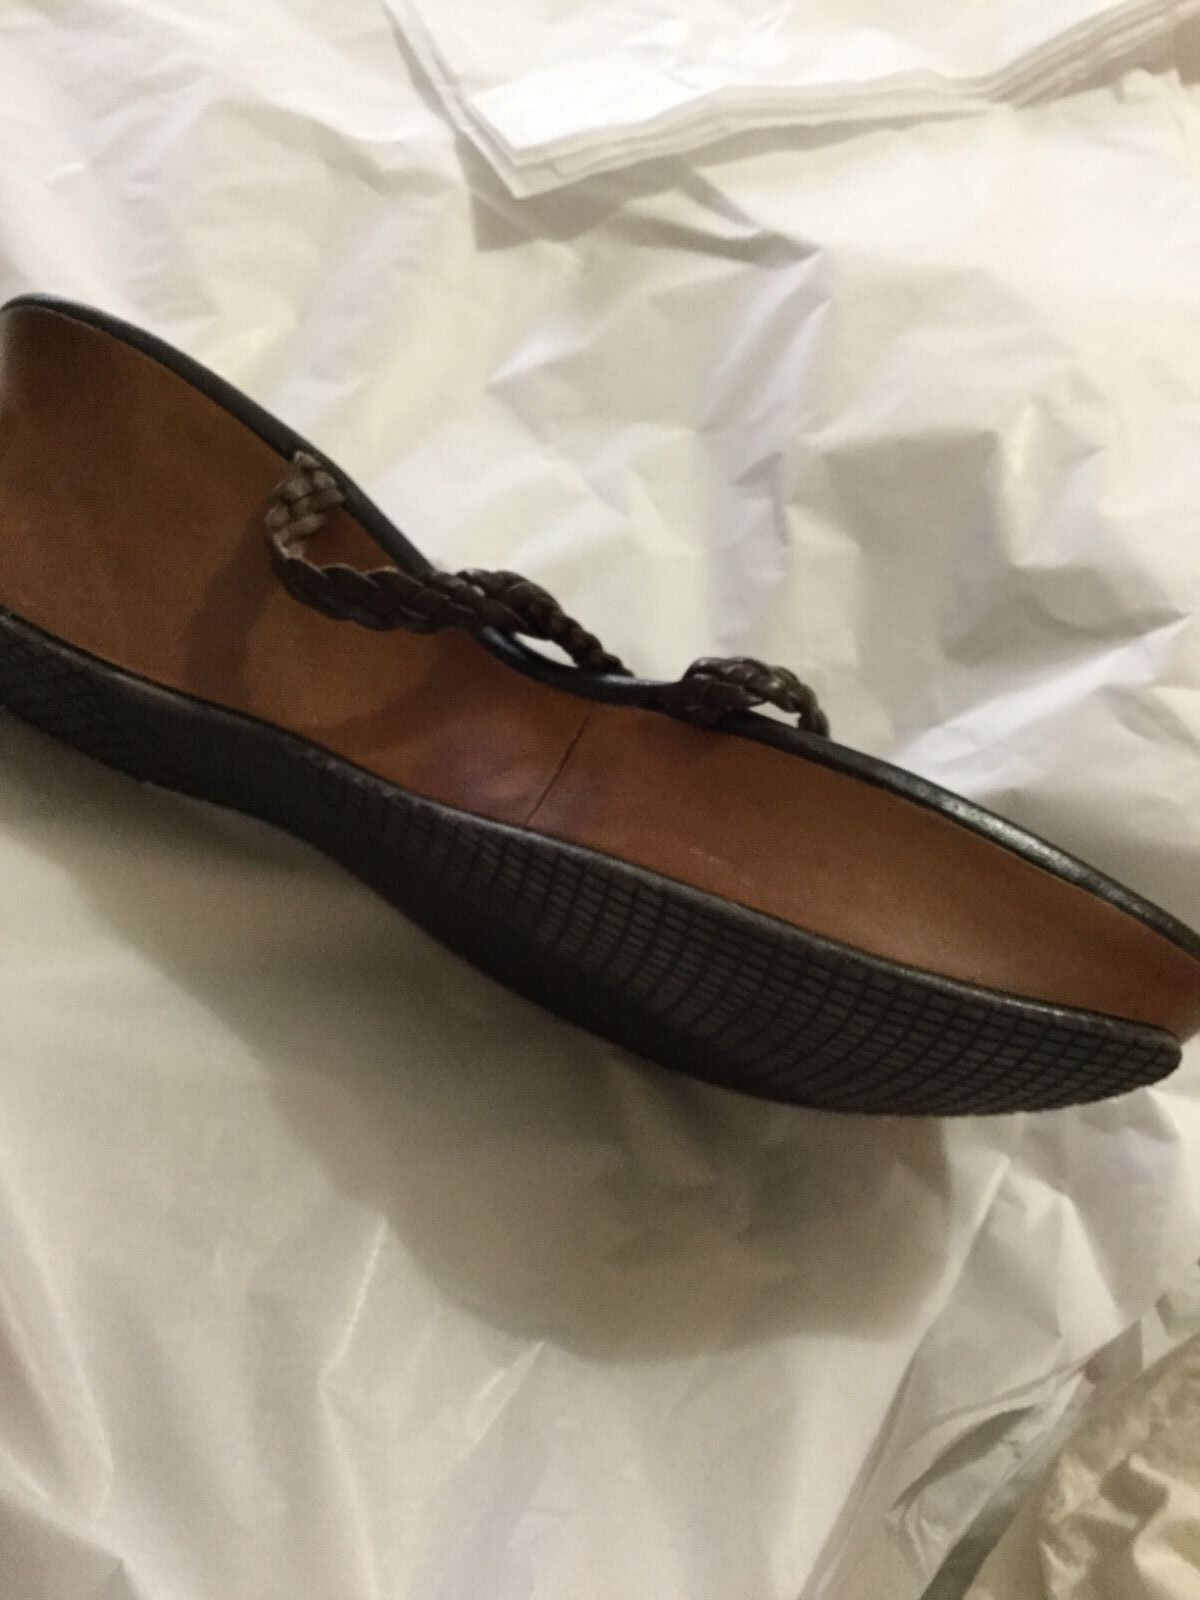 NEW NEW NEW Stuart Weitzman Brown Woven Leather Wedges - 10M 6976f6